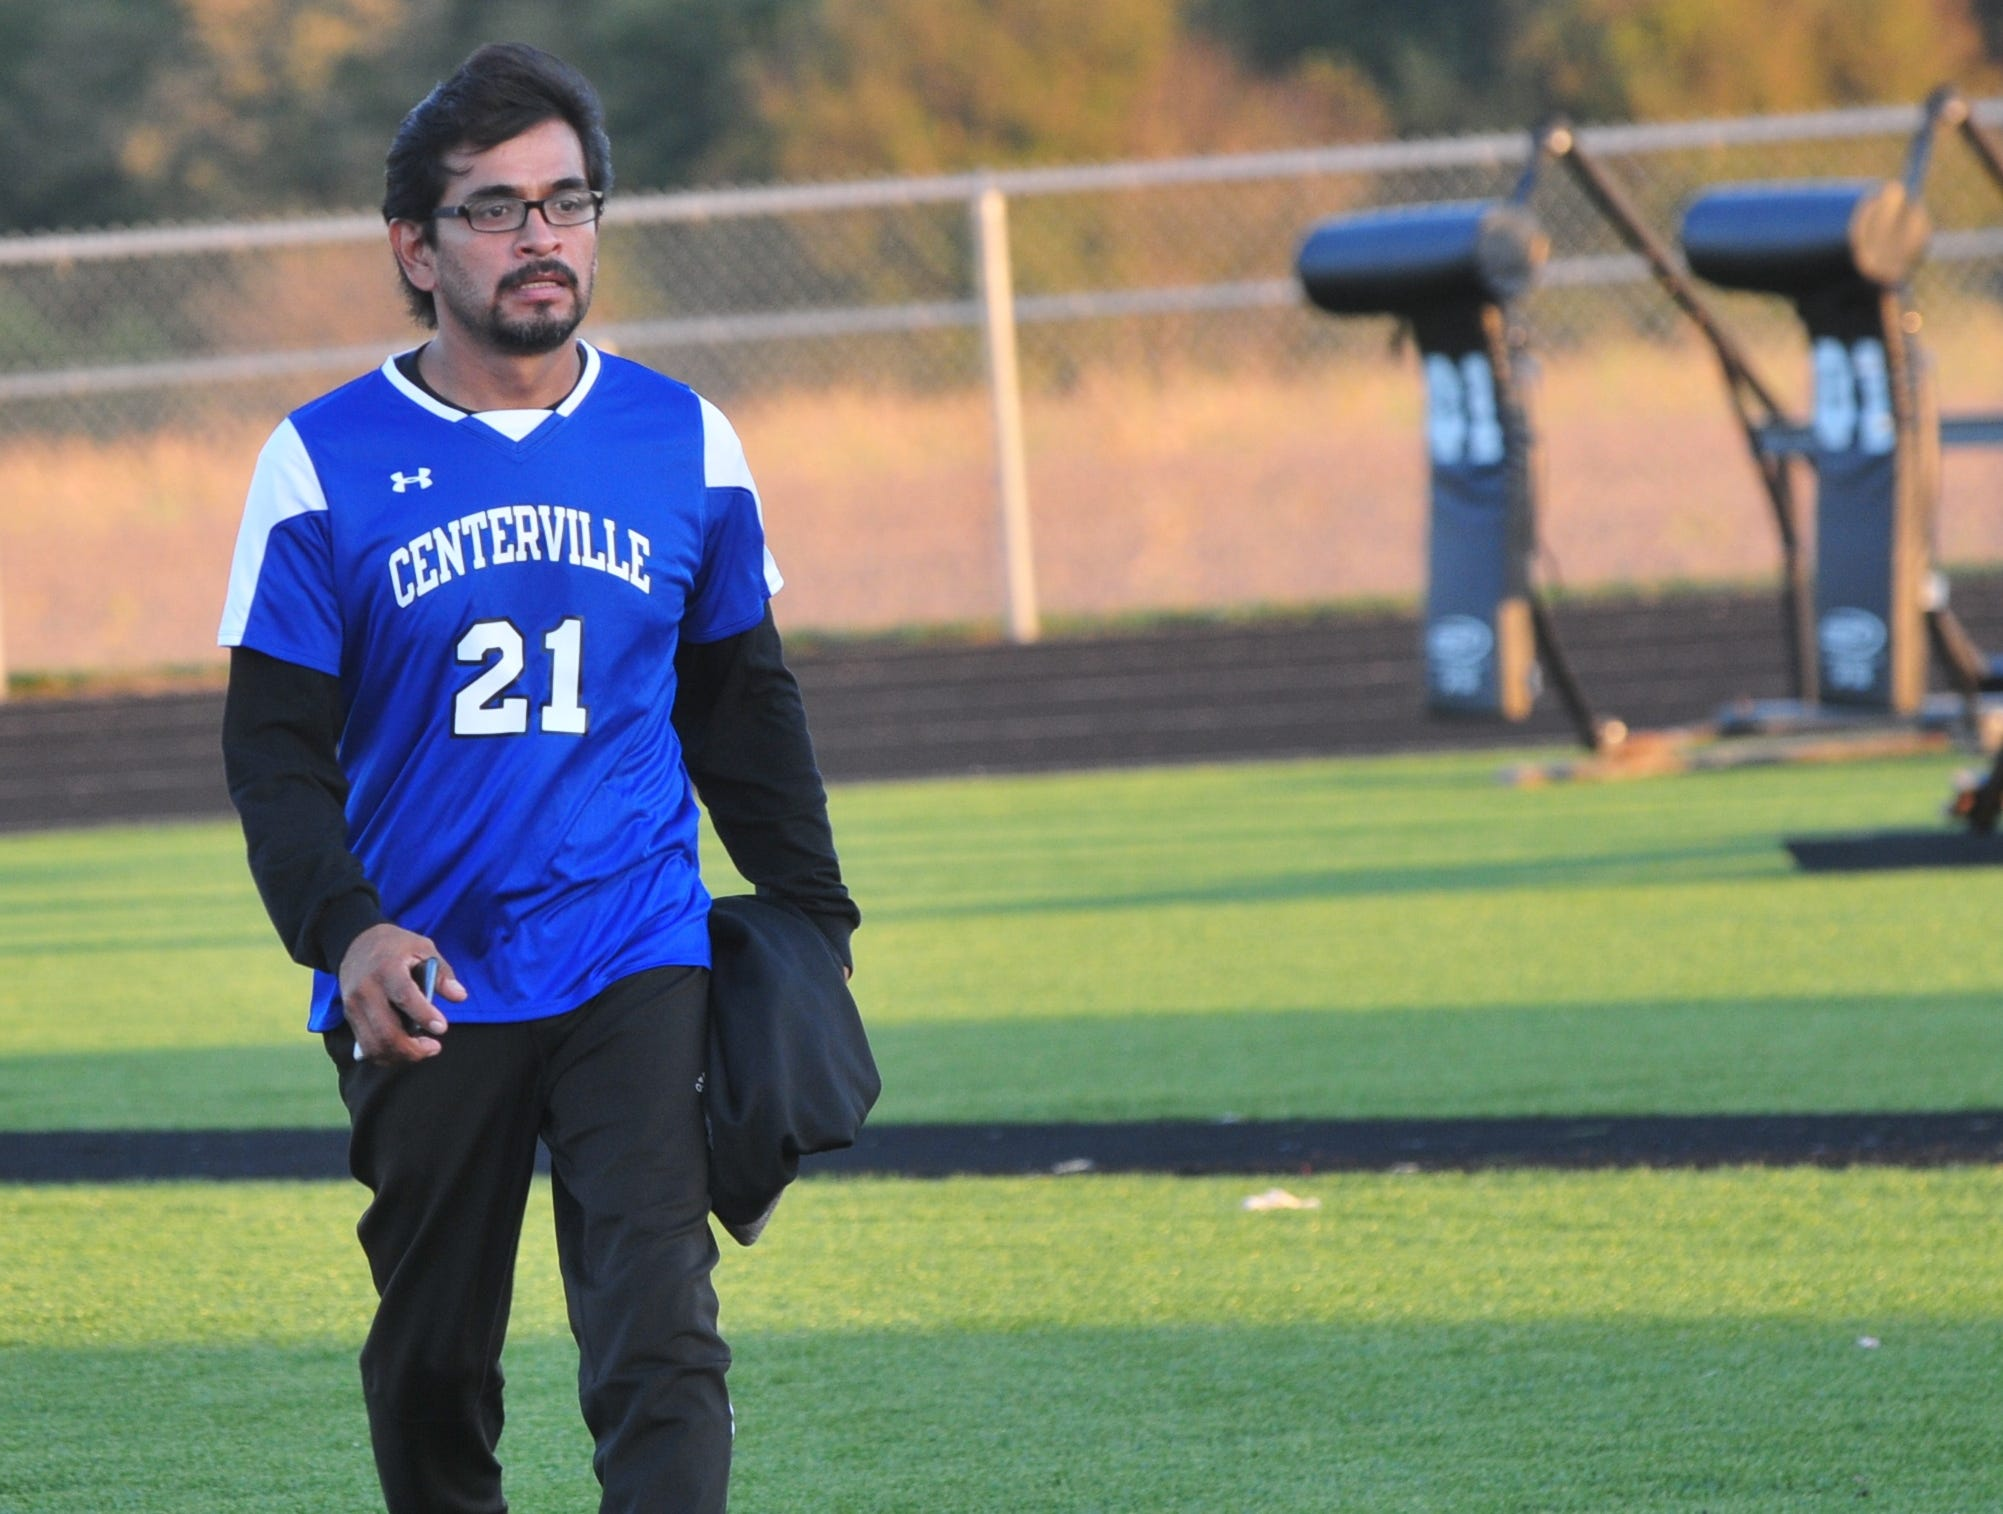 Centerville High School boys soccer coach Ricardo Torres walks off the field after a 3-2 win during the IHSAA Class A Sectional 42 boys soccer semifinal at Knightstown Wednesday, Oct. 3, 2018.